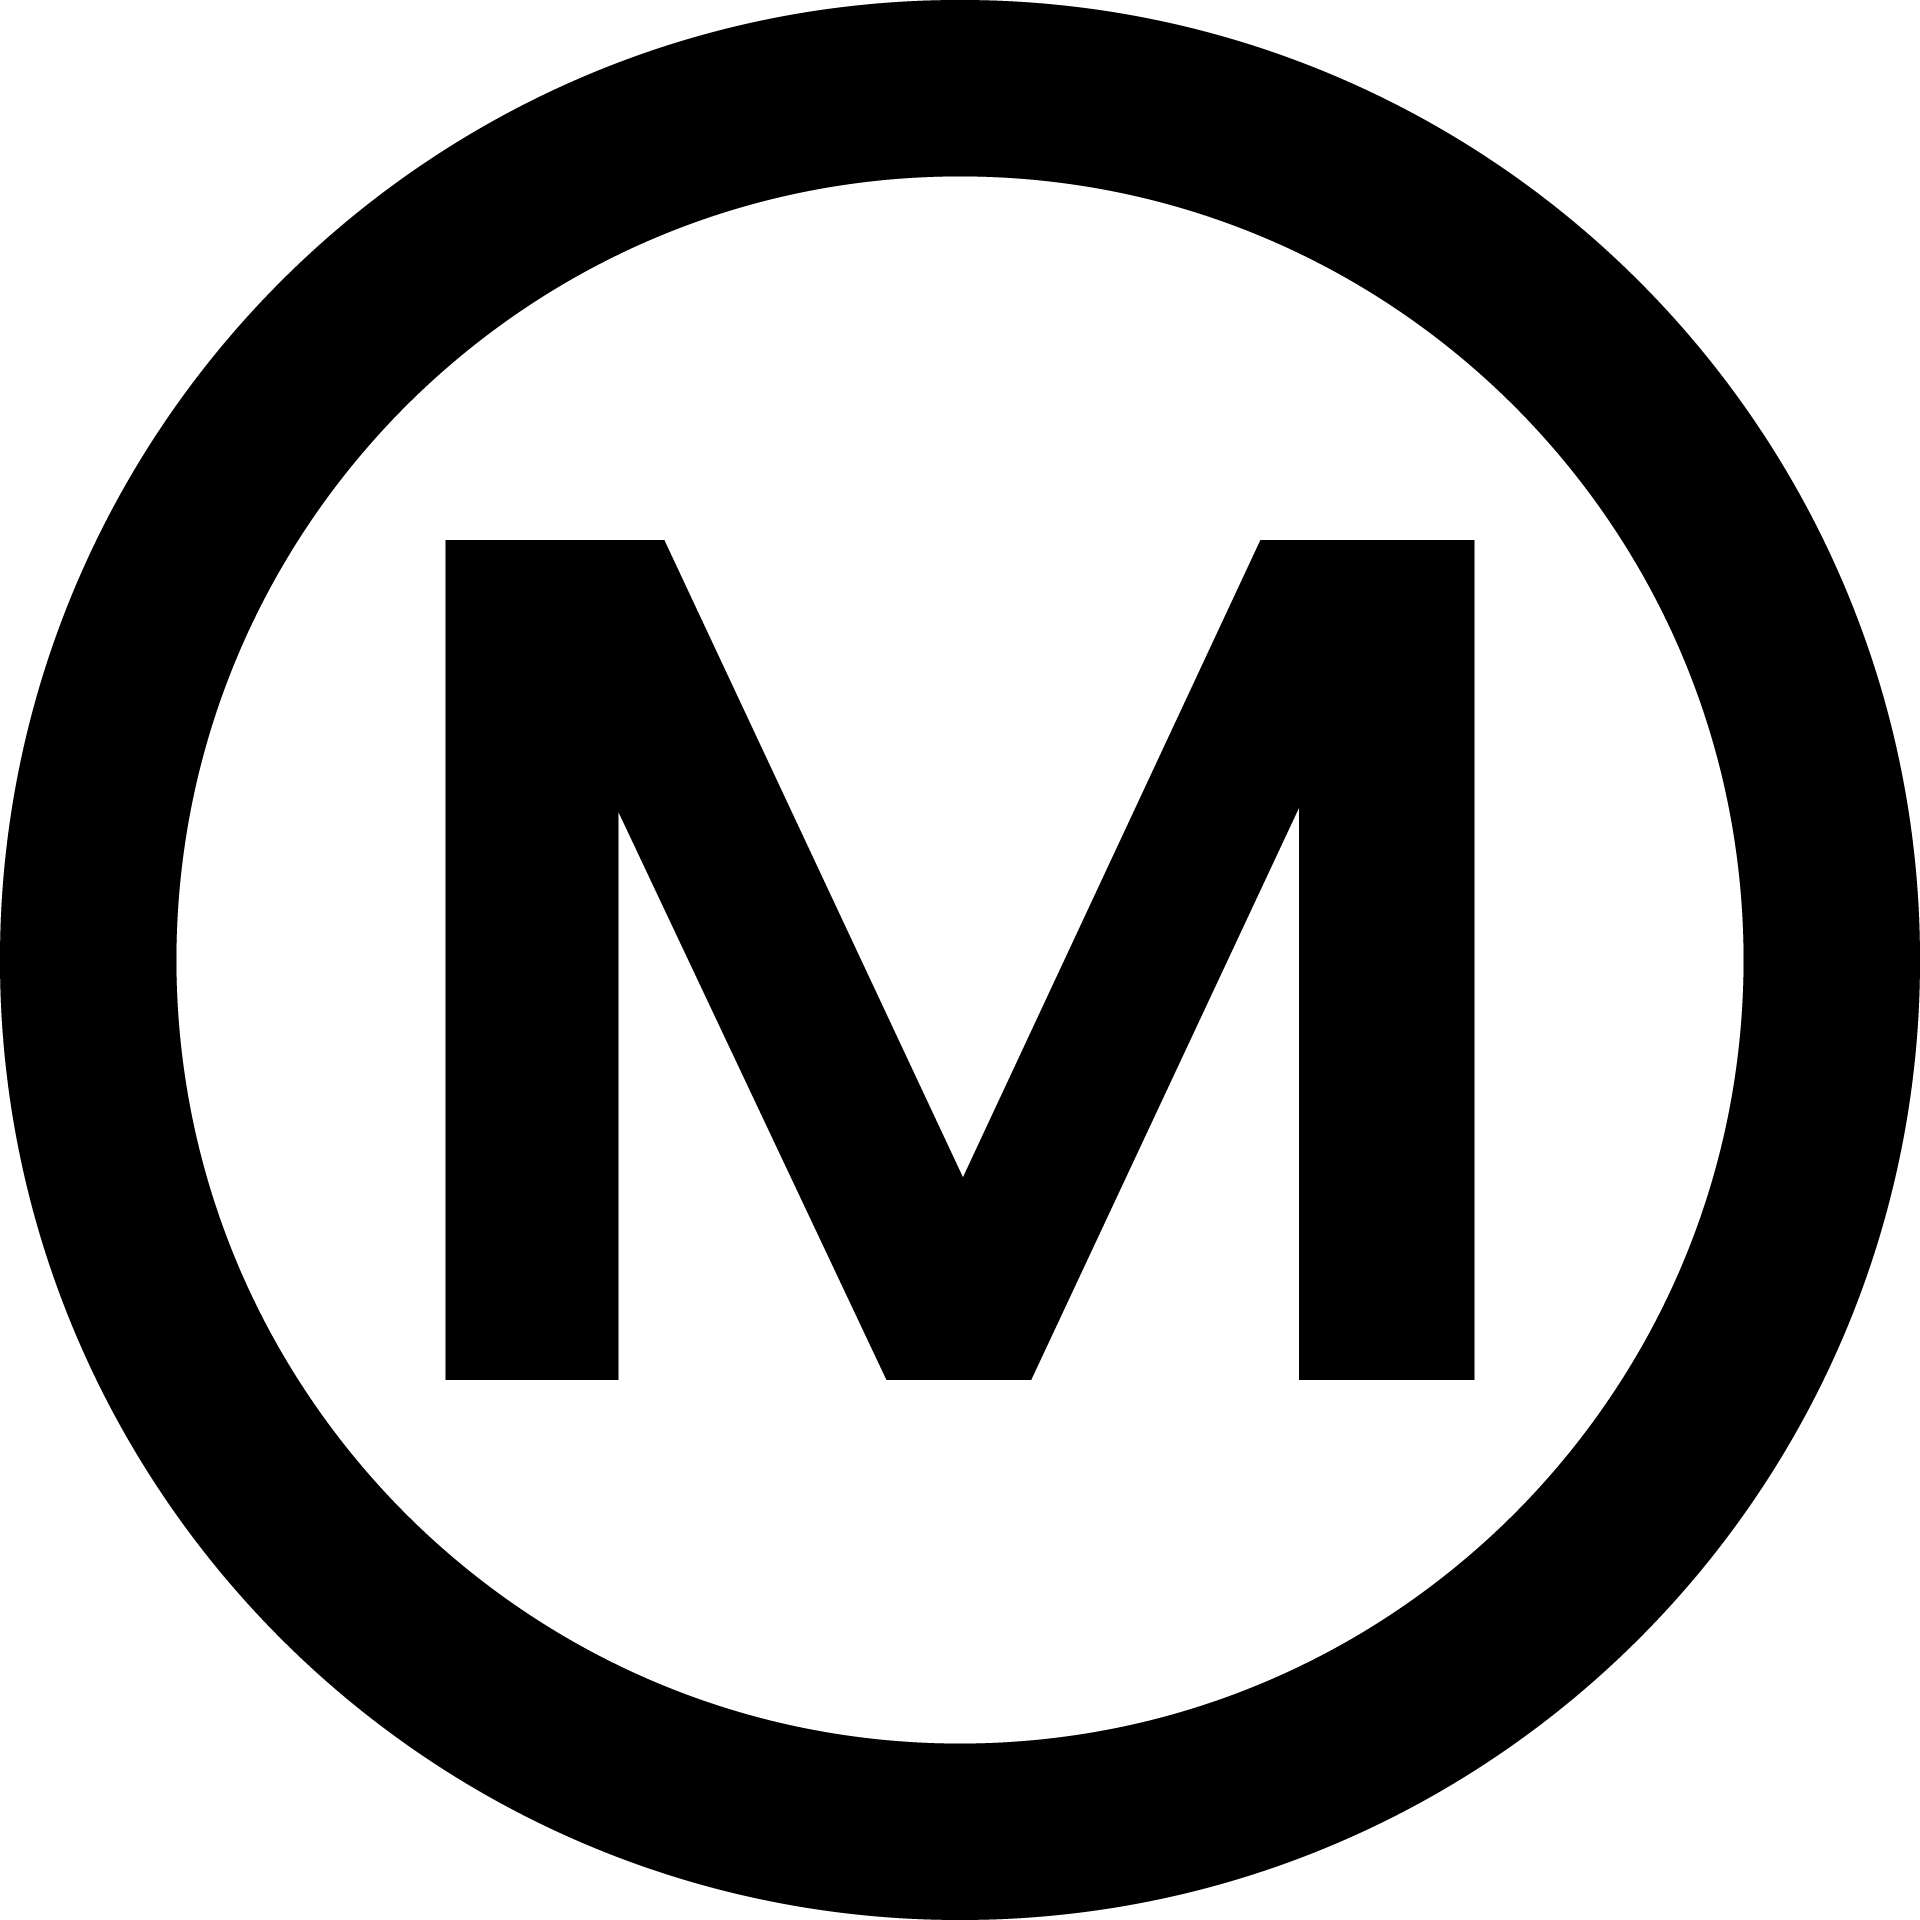 The Miscreants Logo, a bold M in a bold circle